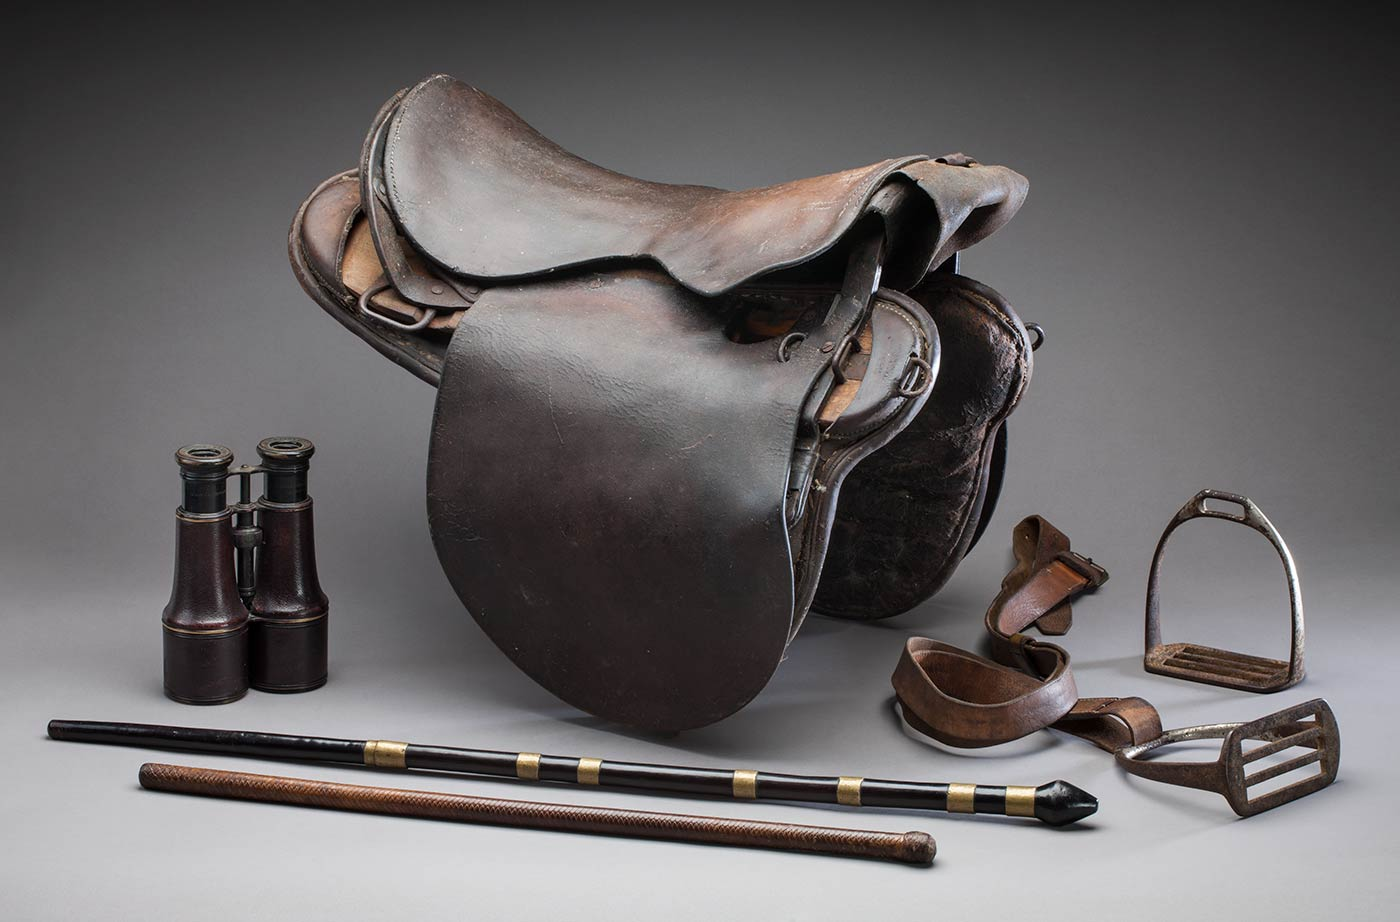 Leather saddle beside a small pair of binoculars and horse stirrups.